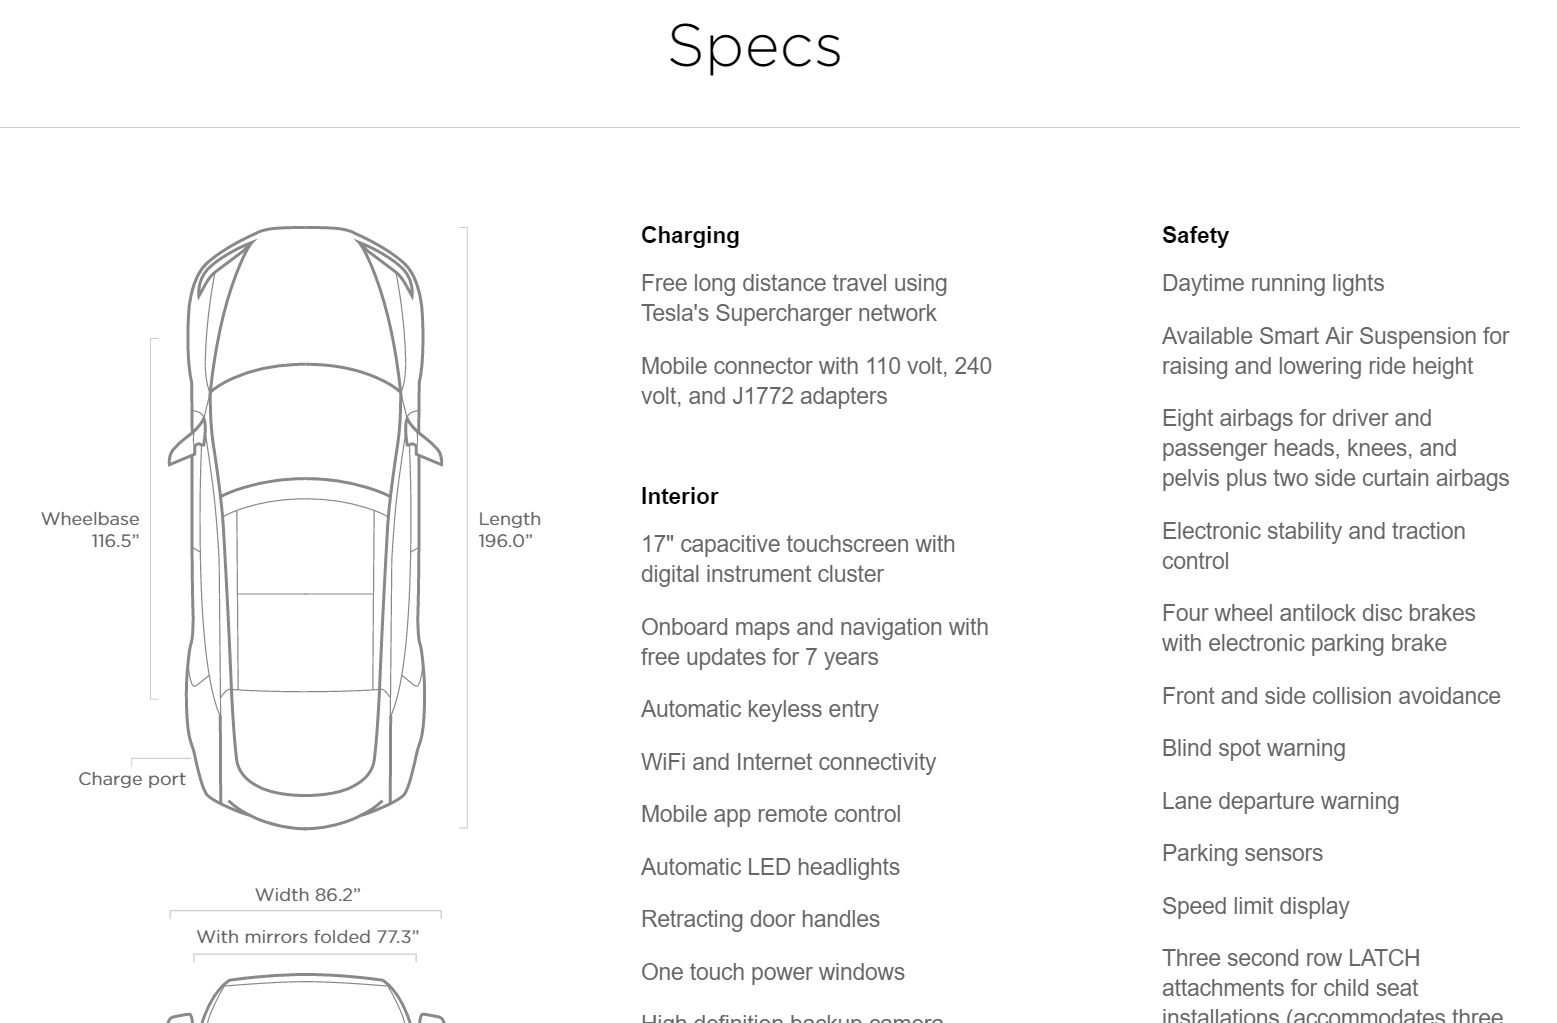 July 19 2016 Specs.PNG